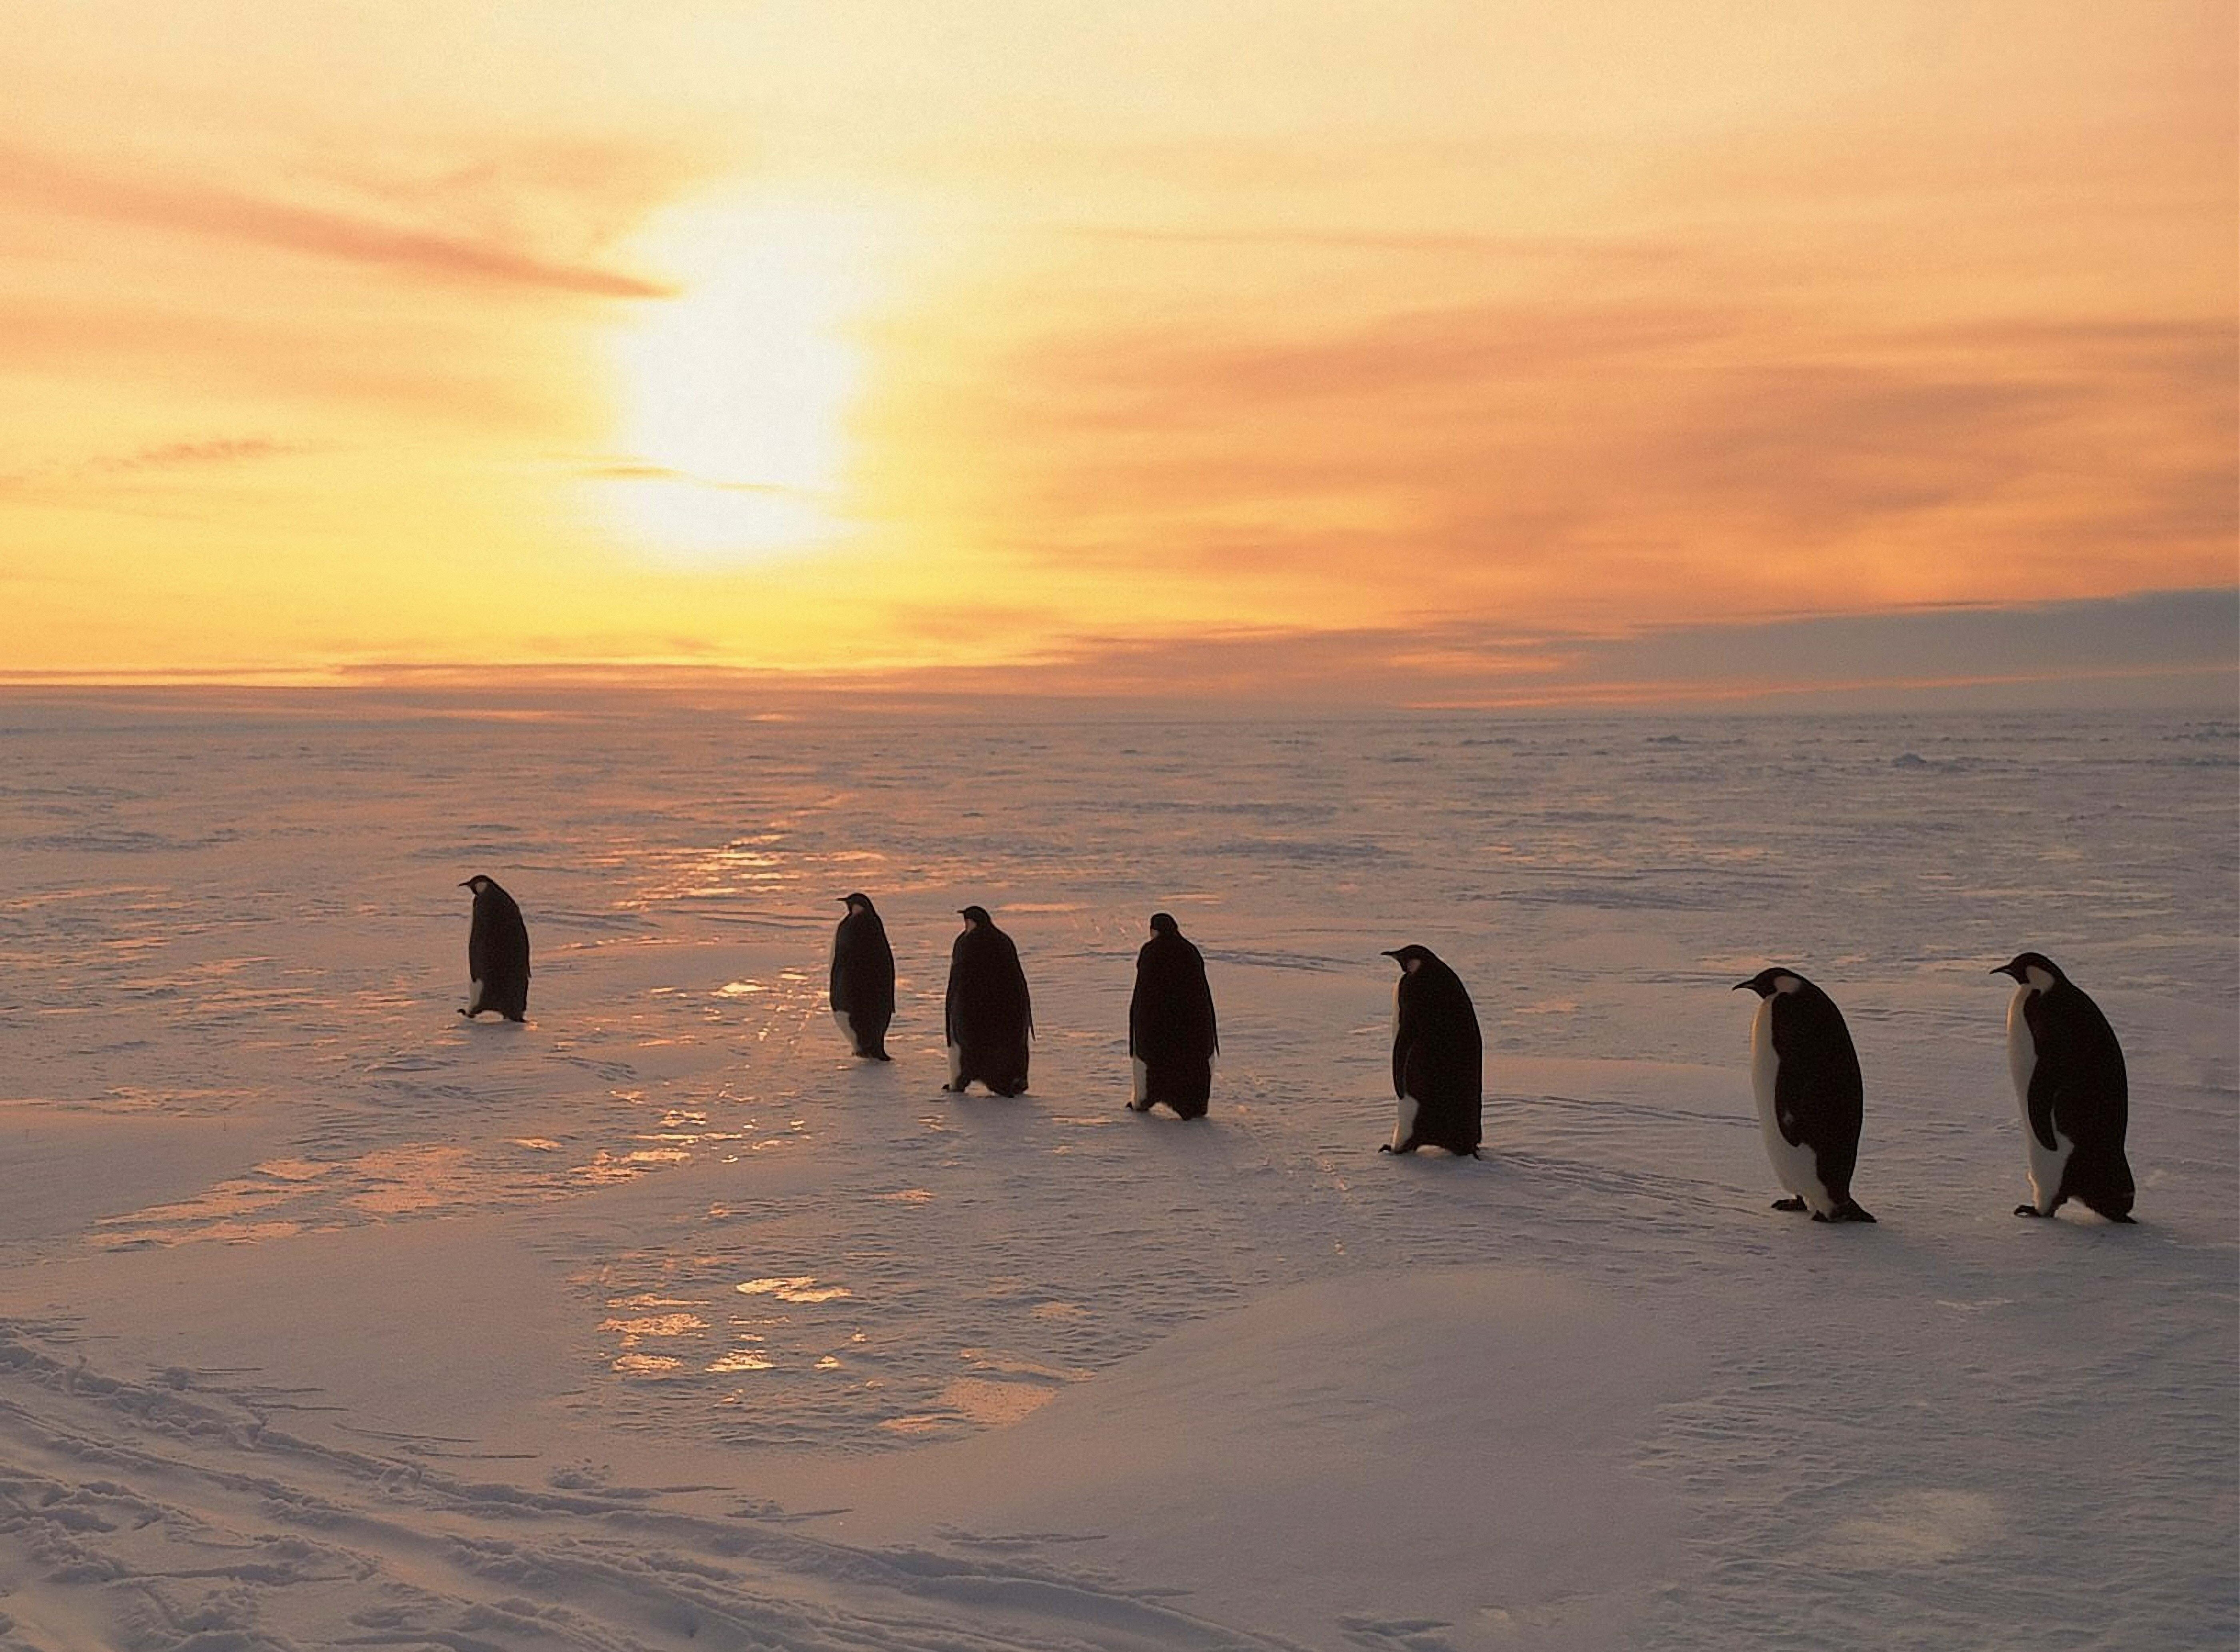 65102 download wallpaper Animals, Winter, Pinguins, Ice, Snow, Dawn, North screensavers and pictures for free